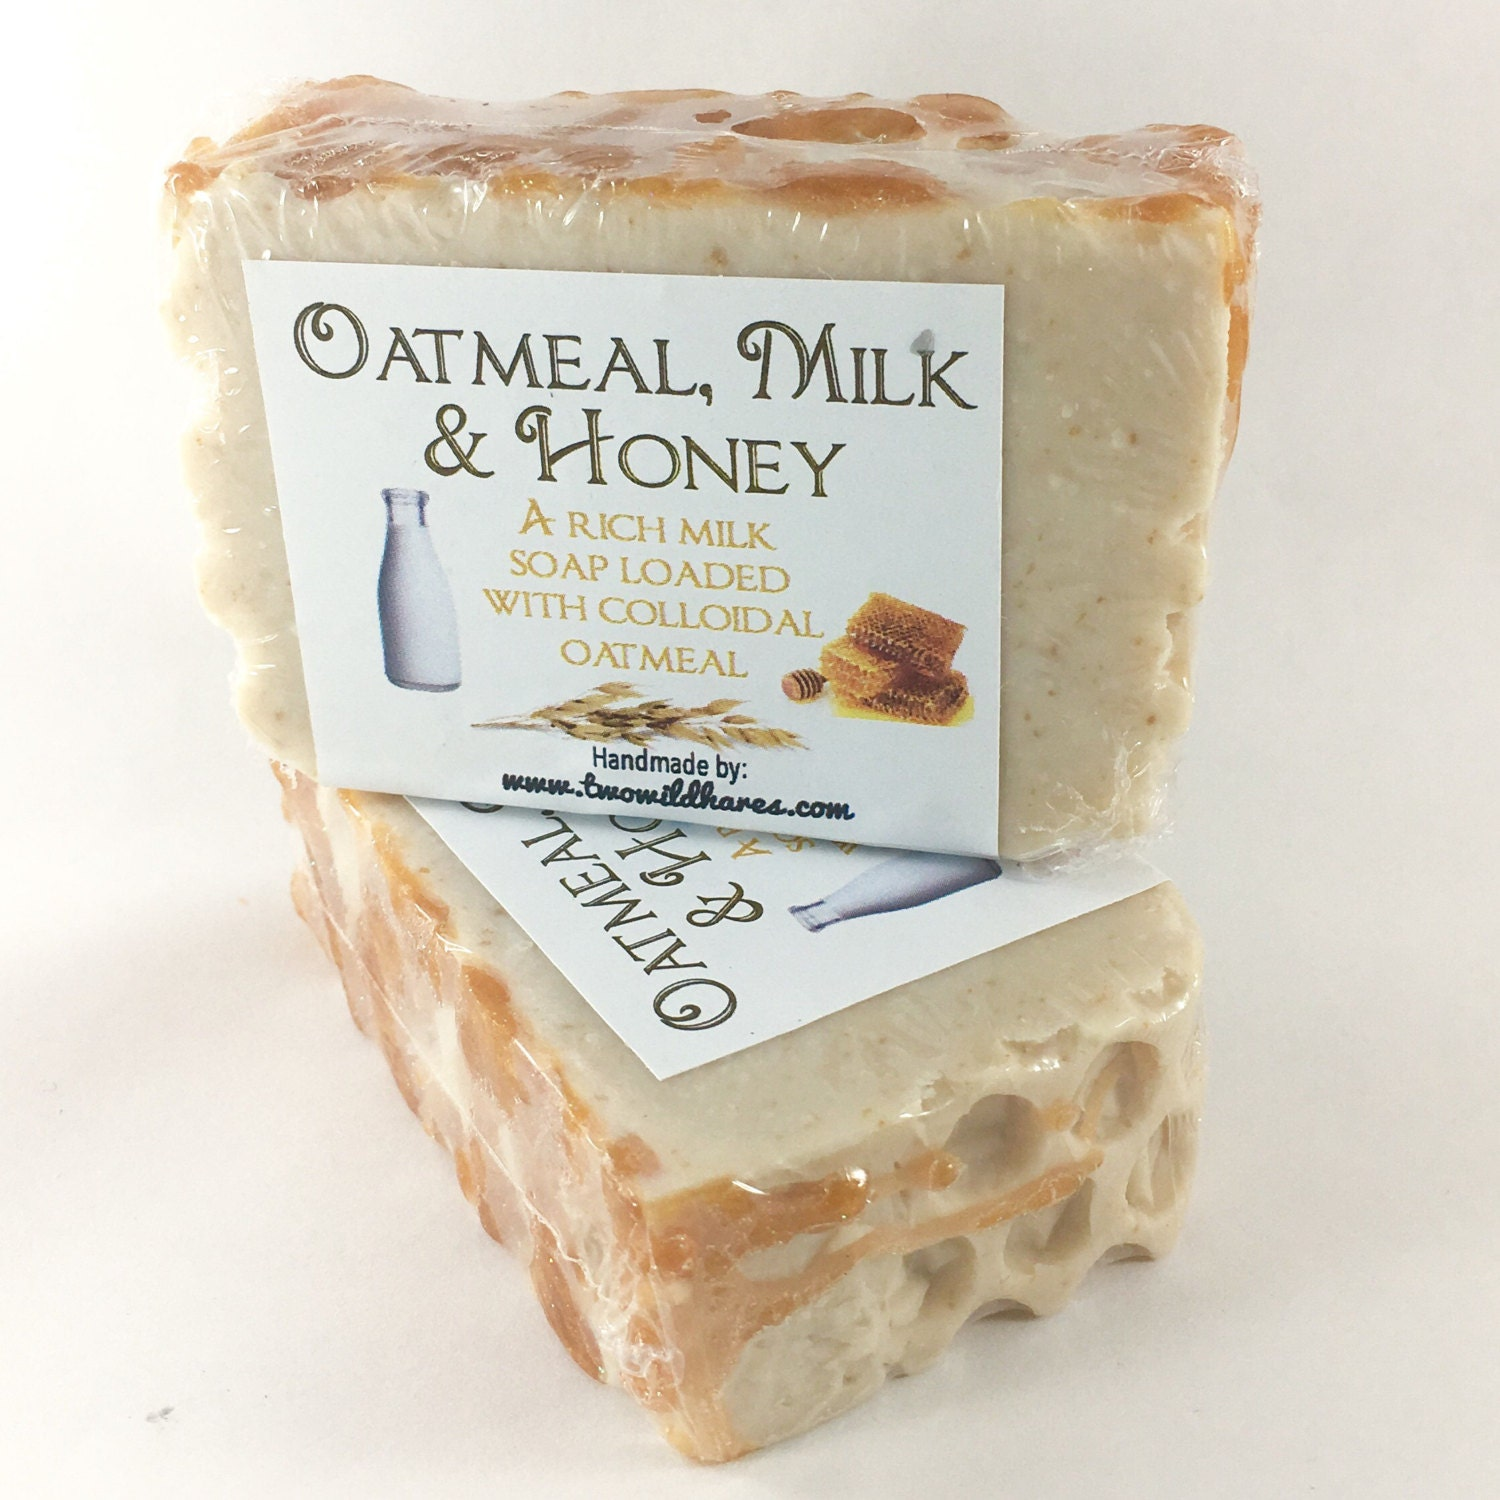 OATMEAL, MILK & HONEY, Milk, Colloidal Oats Soap, 3.5 oz